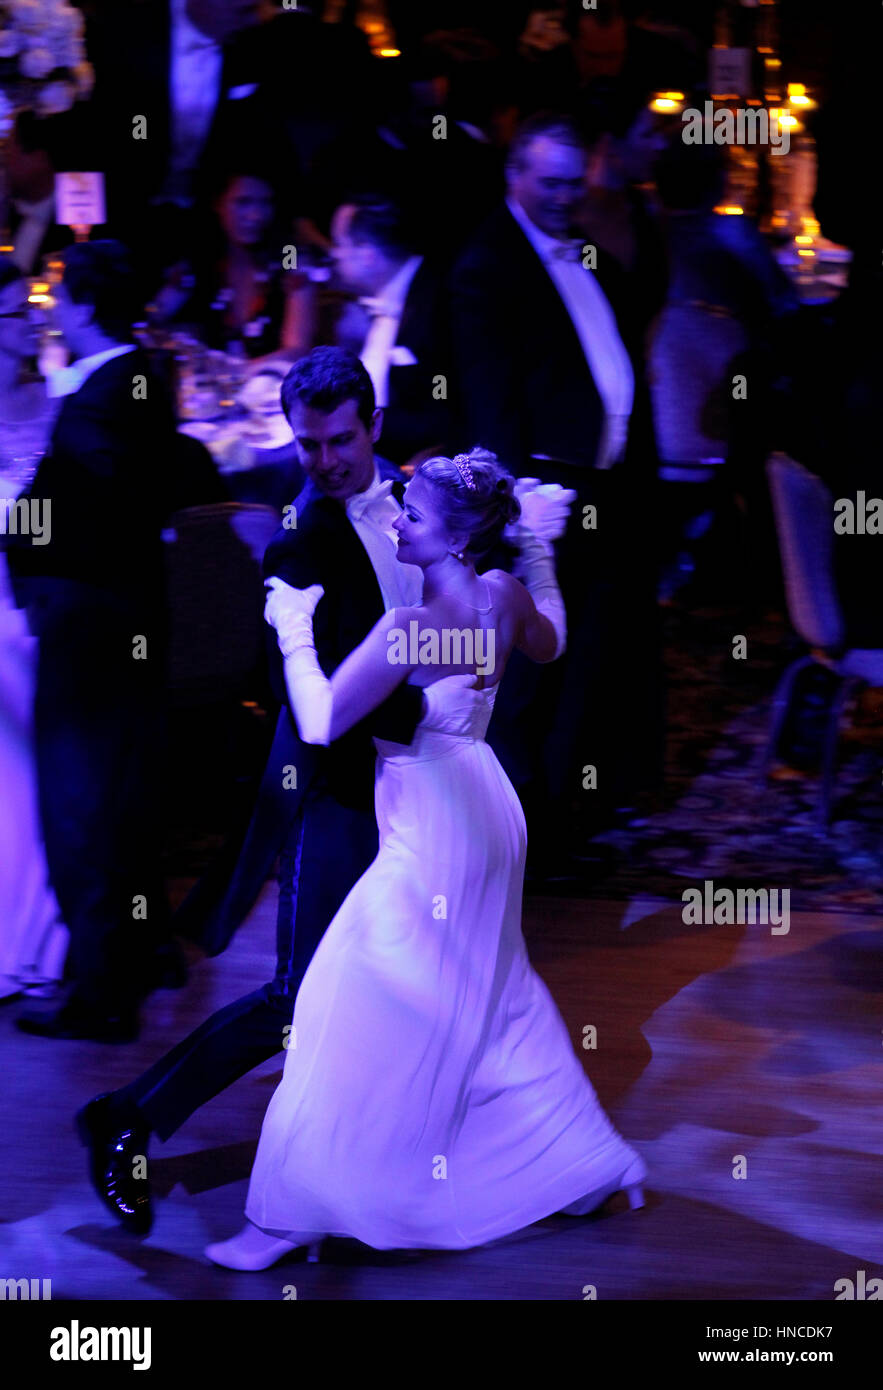 New York, United States. 10th Feb, 2017. Attendees at the 62nd Viennese Opera Ball at the Waldorf Astoria Hotel - Stock Image